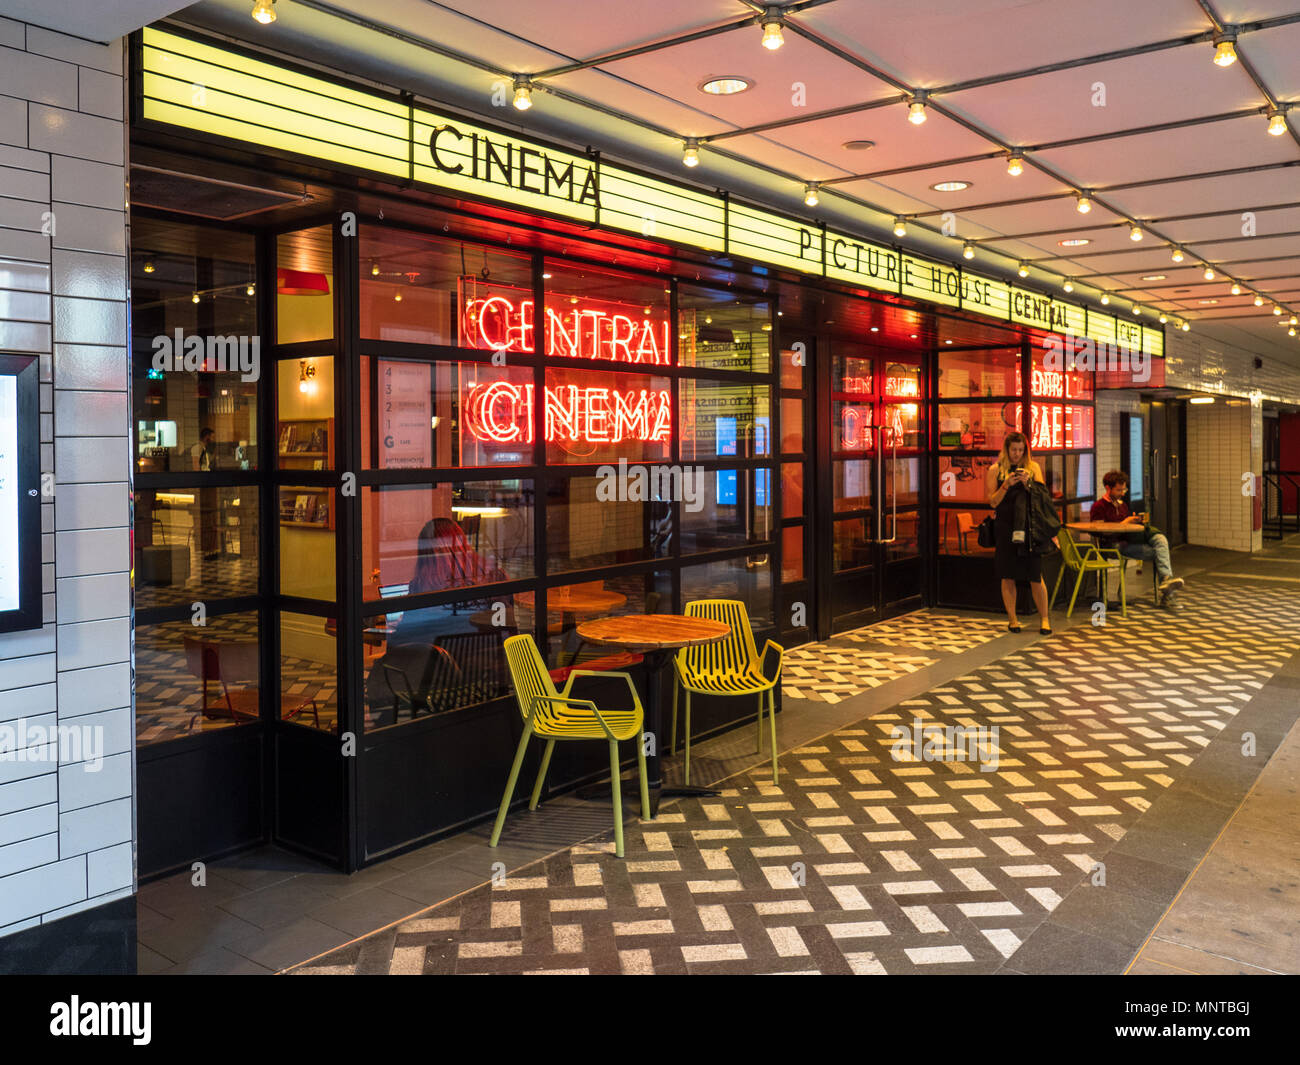 PictureHouse Central Cinema near Piccadilly Circus in London's West End - Stock Image